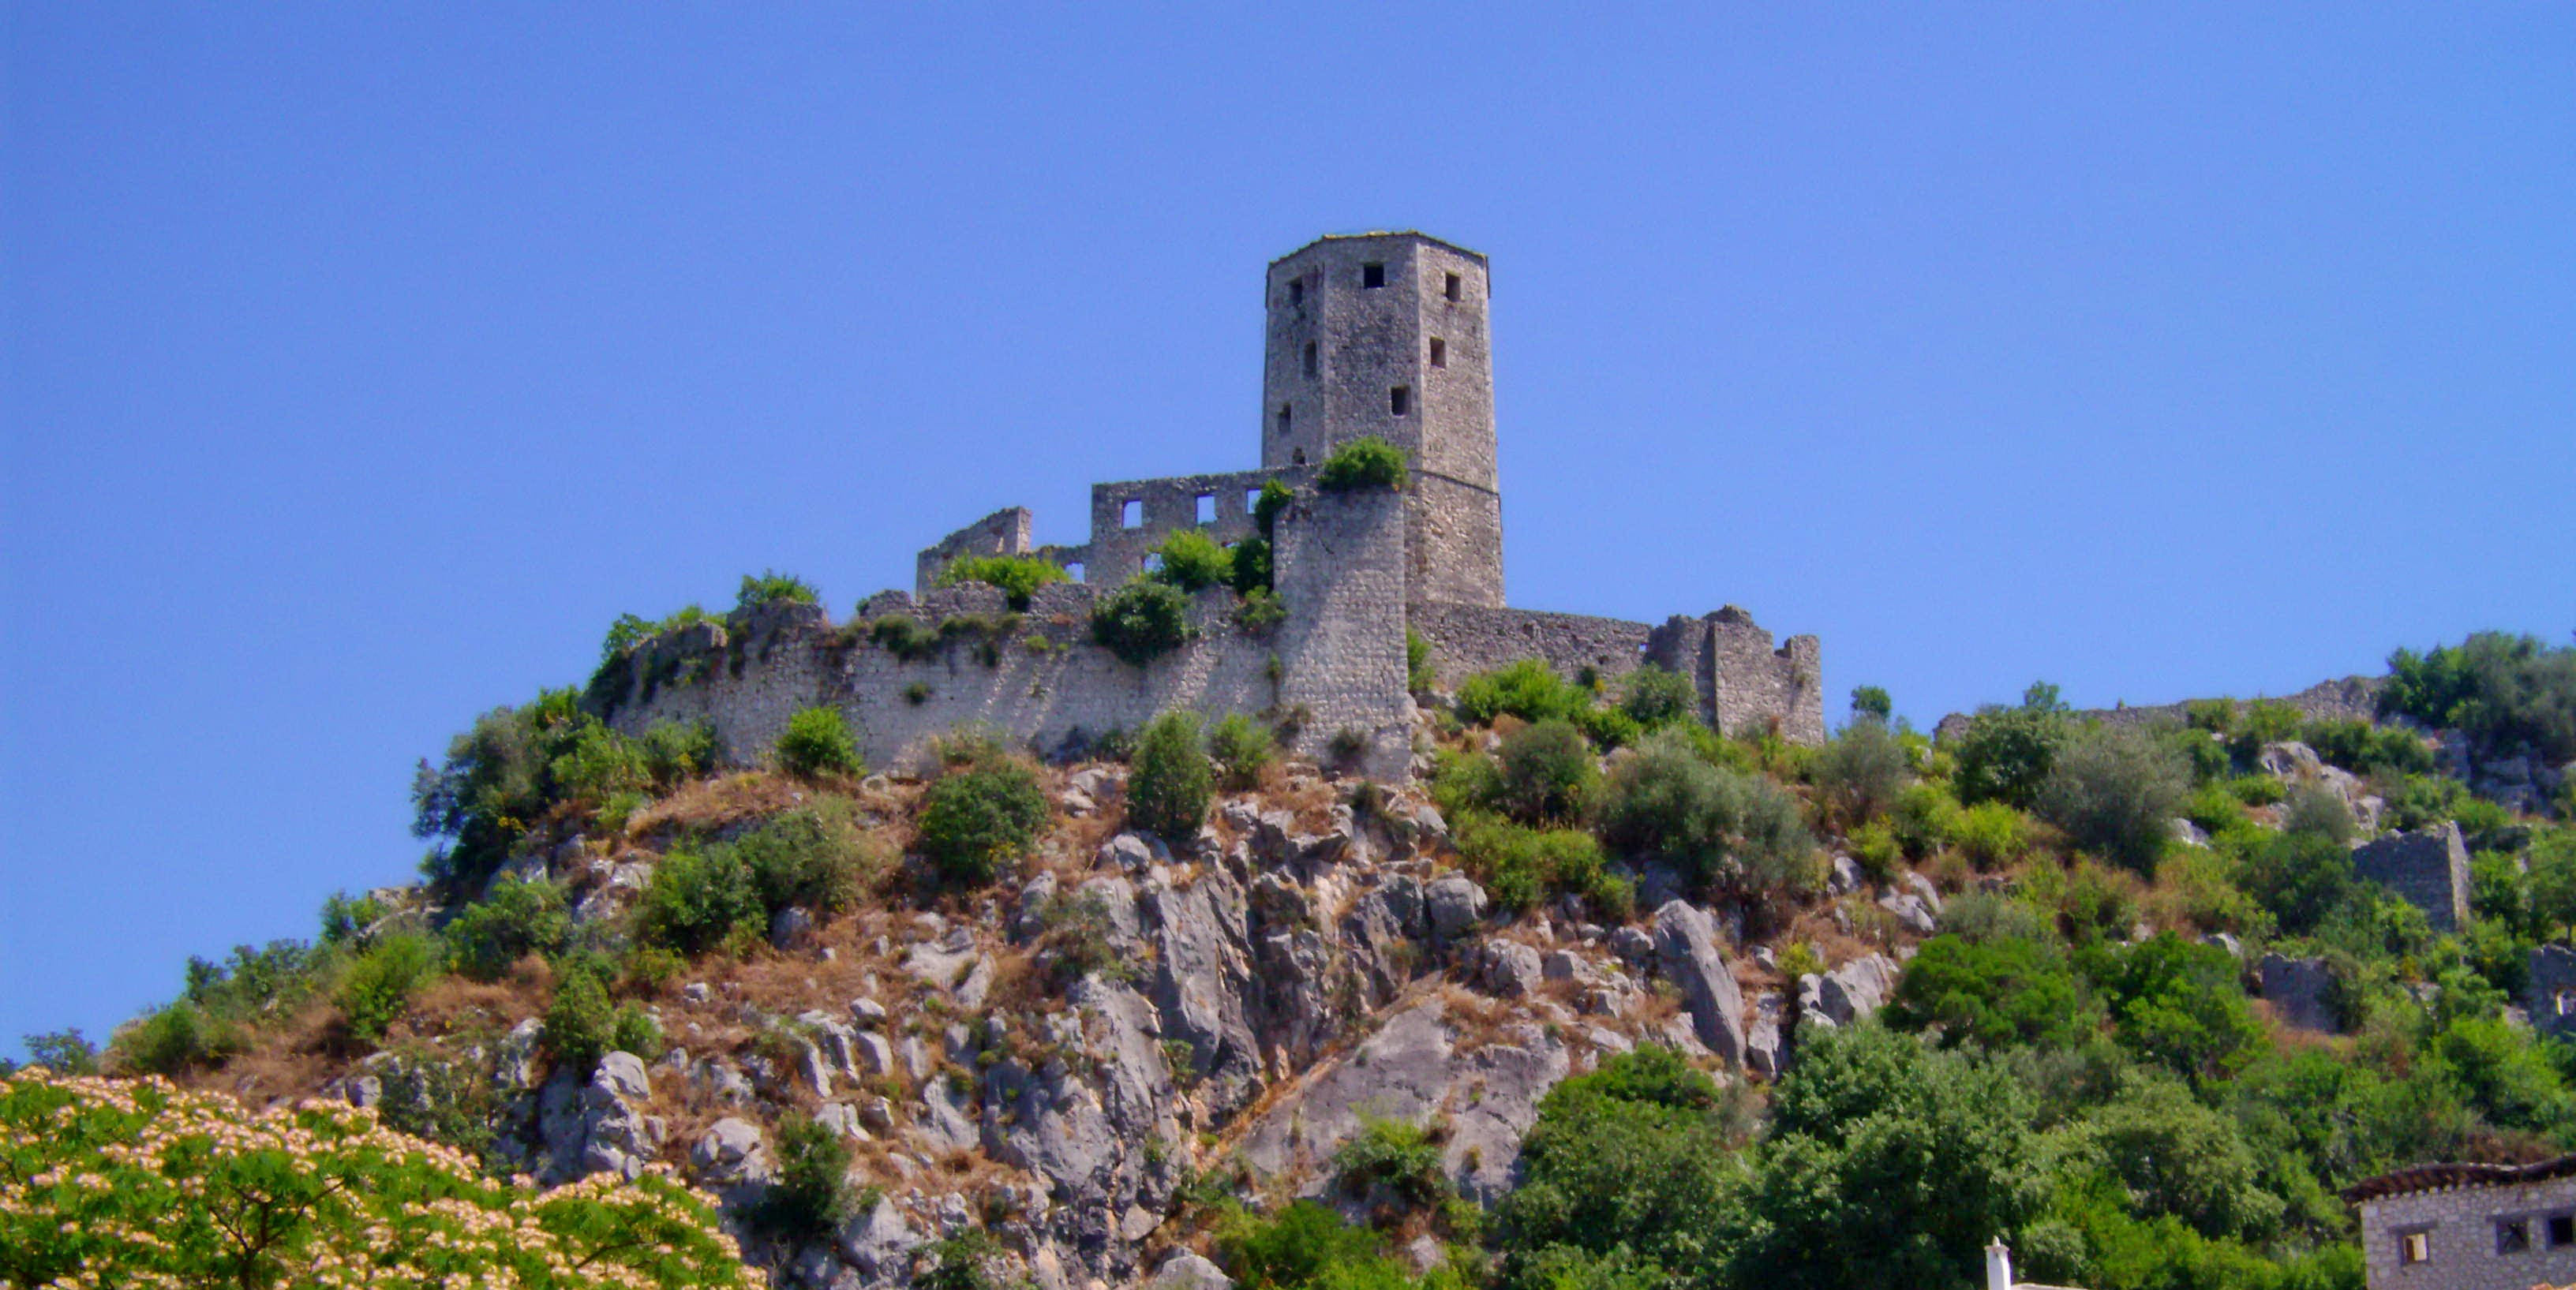 tower on the top of a hill